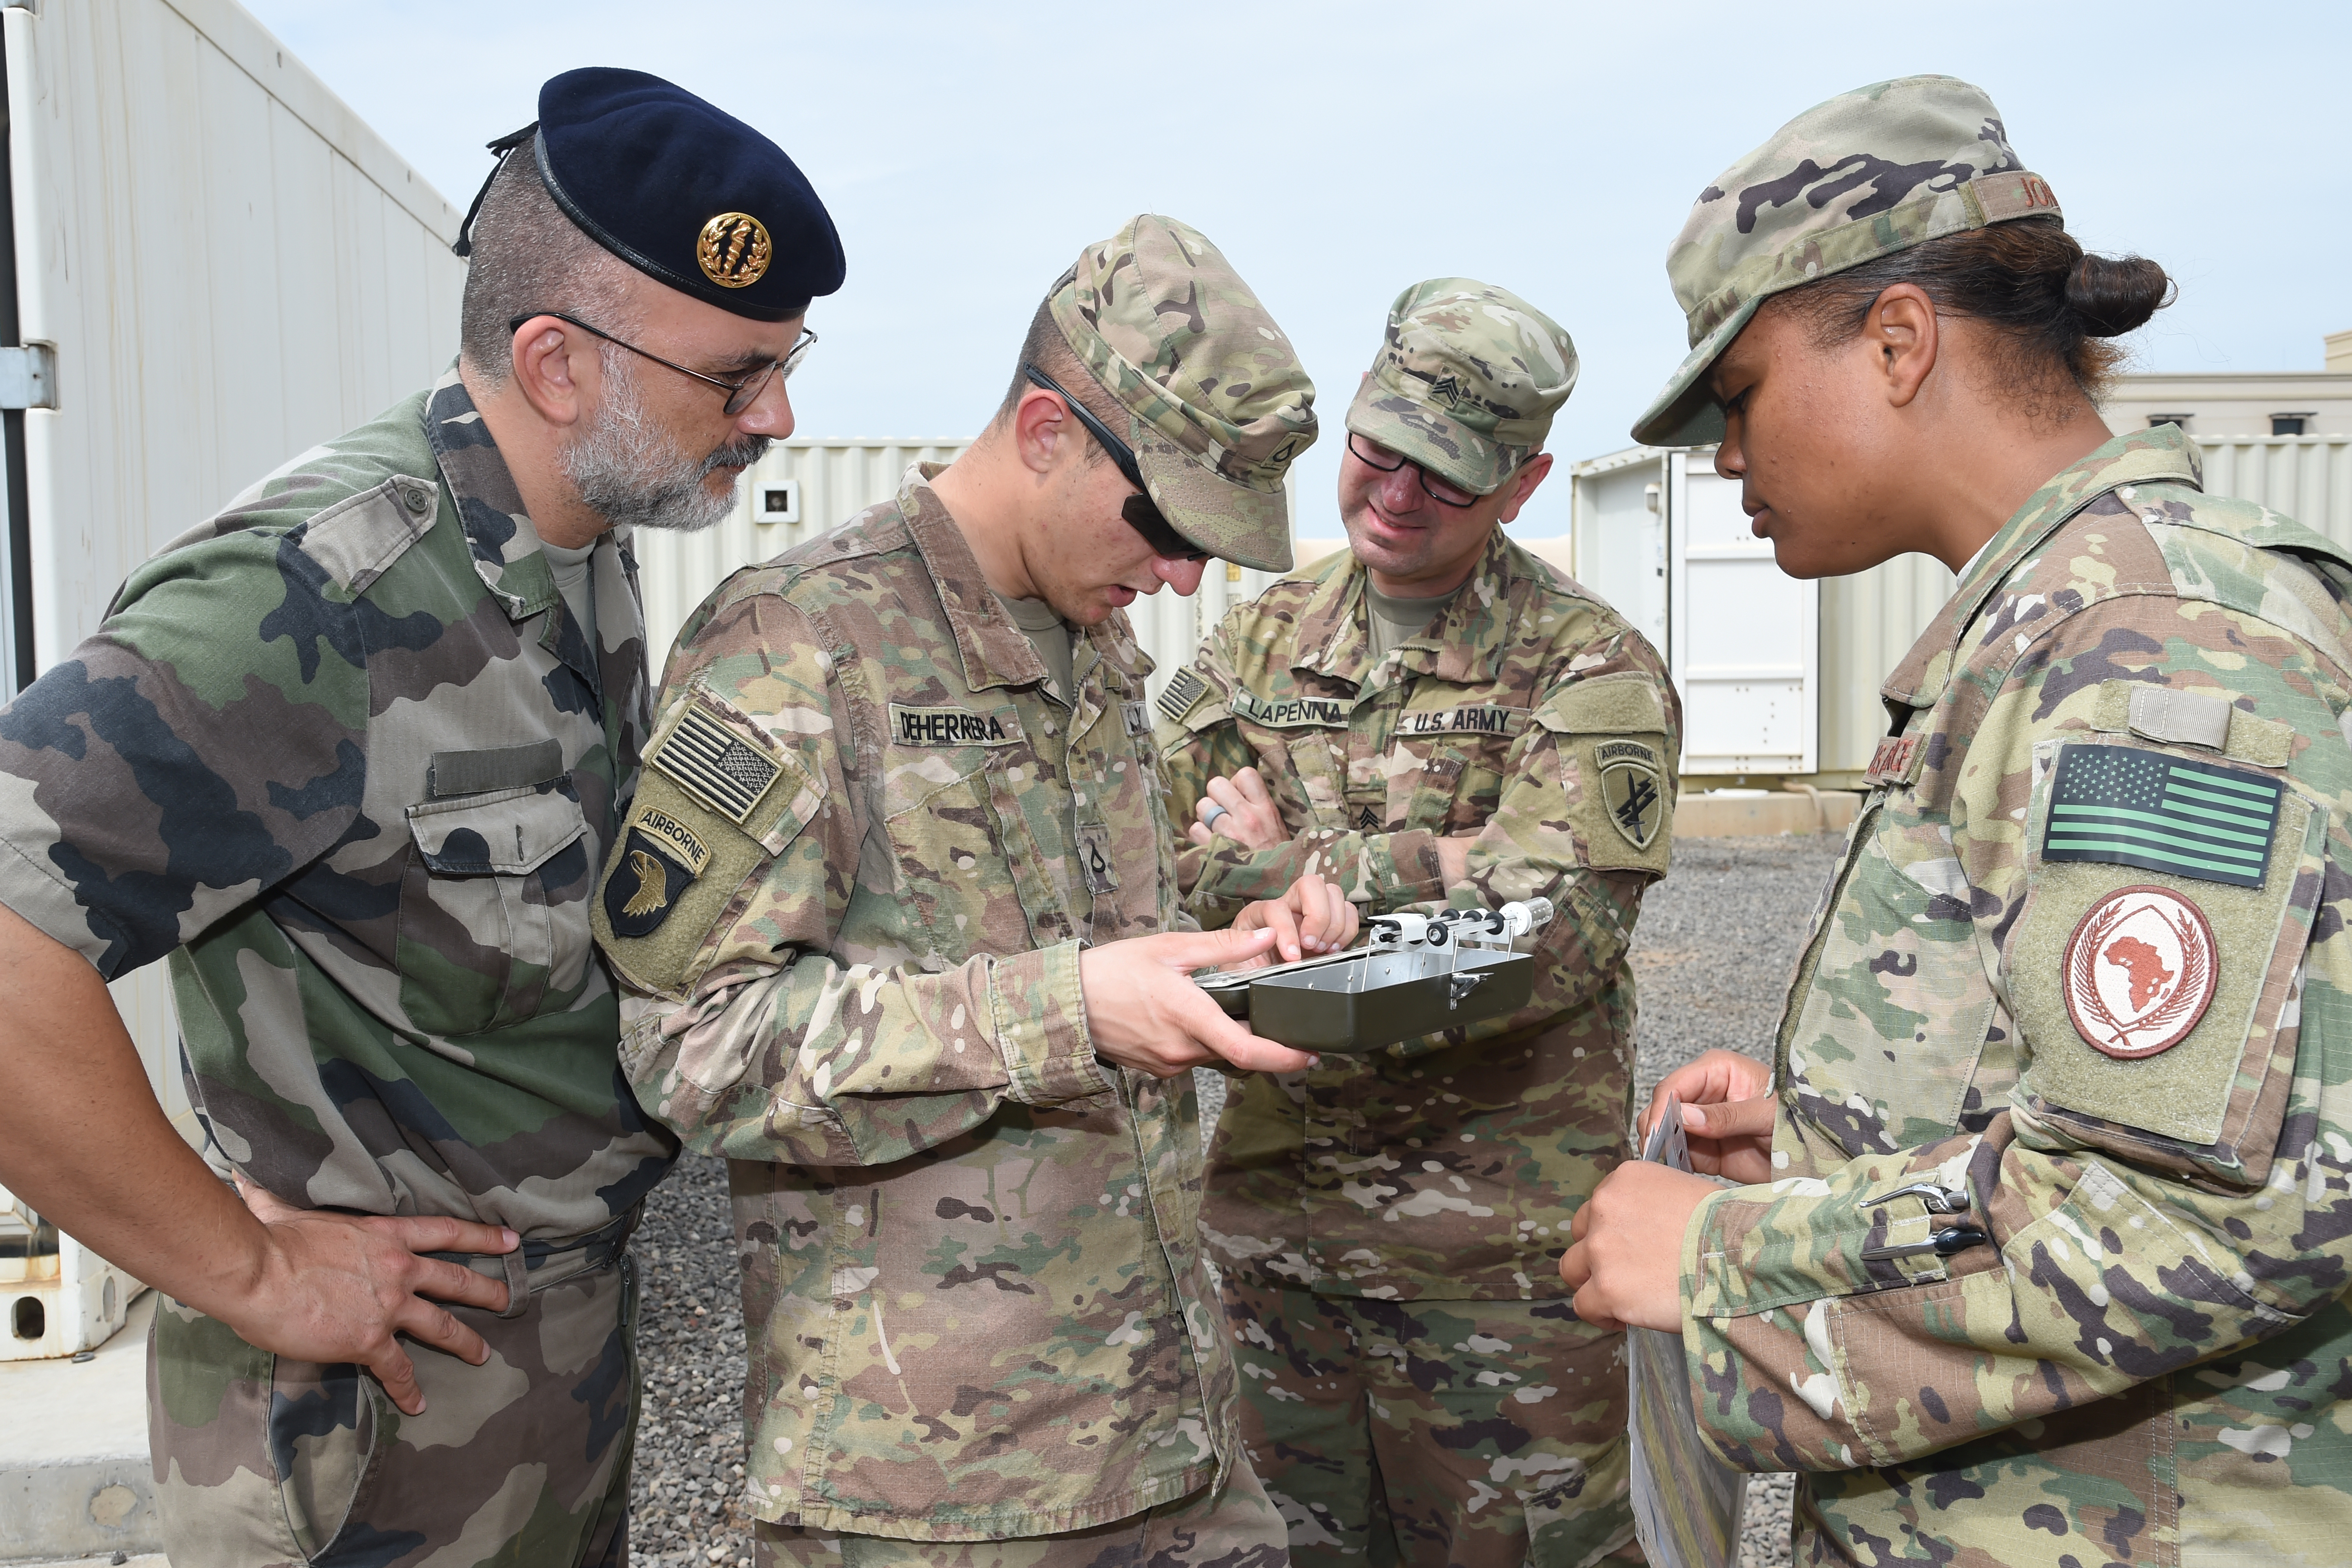 U.S. and French military members demonstrate their ability to use a wet bulb-globe temperature (WBGT) kit during a Field Sanitation Team Training course at Camp Lemonnier, Djibouti, Feb. 14, 2017. The WBGT kit is an instrument for providing information on hot weather risks to the health of troops undergoing training. (U.S. Air National Guard photo by Master Sgt. Paul Gorman) (Foreign service members name tape has been obscured for OPSEC)